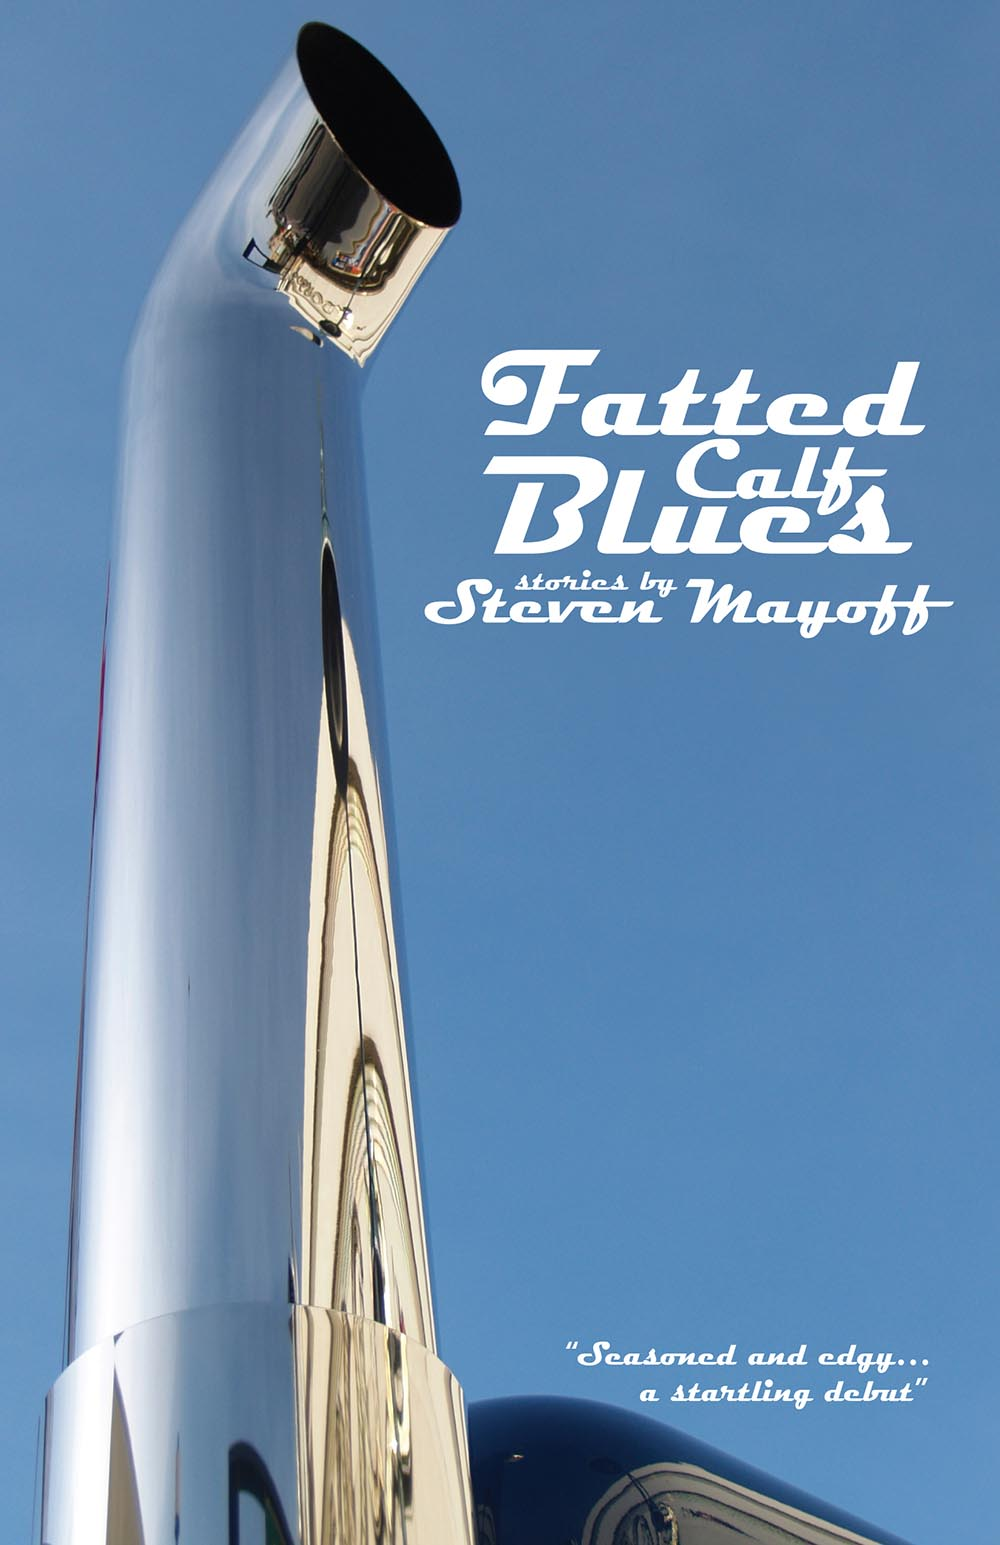 Fatted Calf Blues by Steven Mayoff